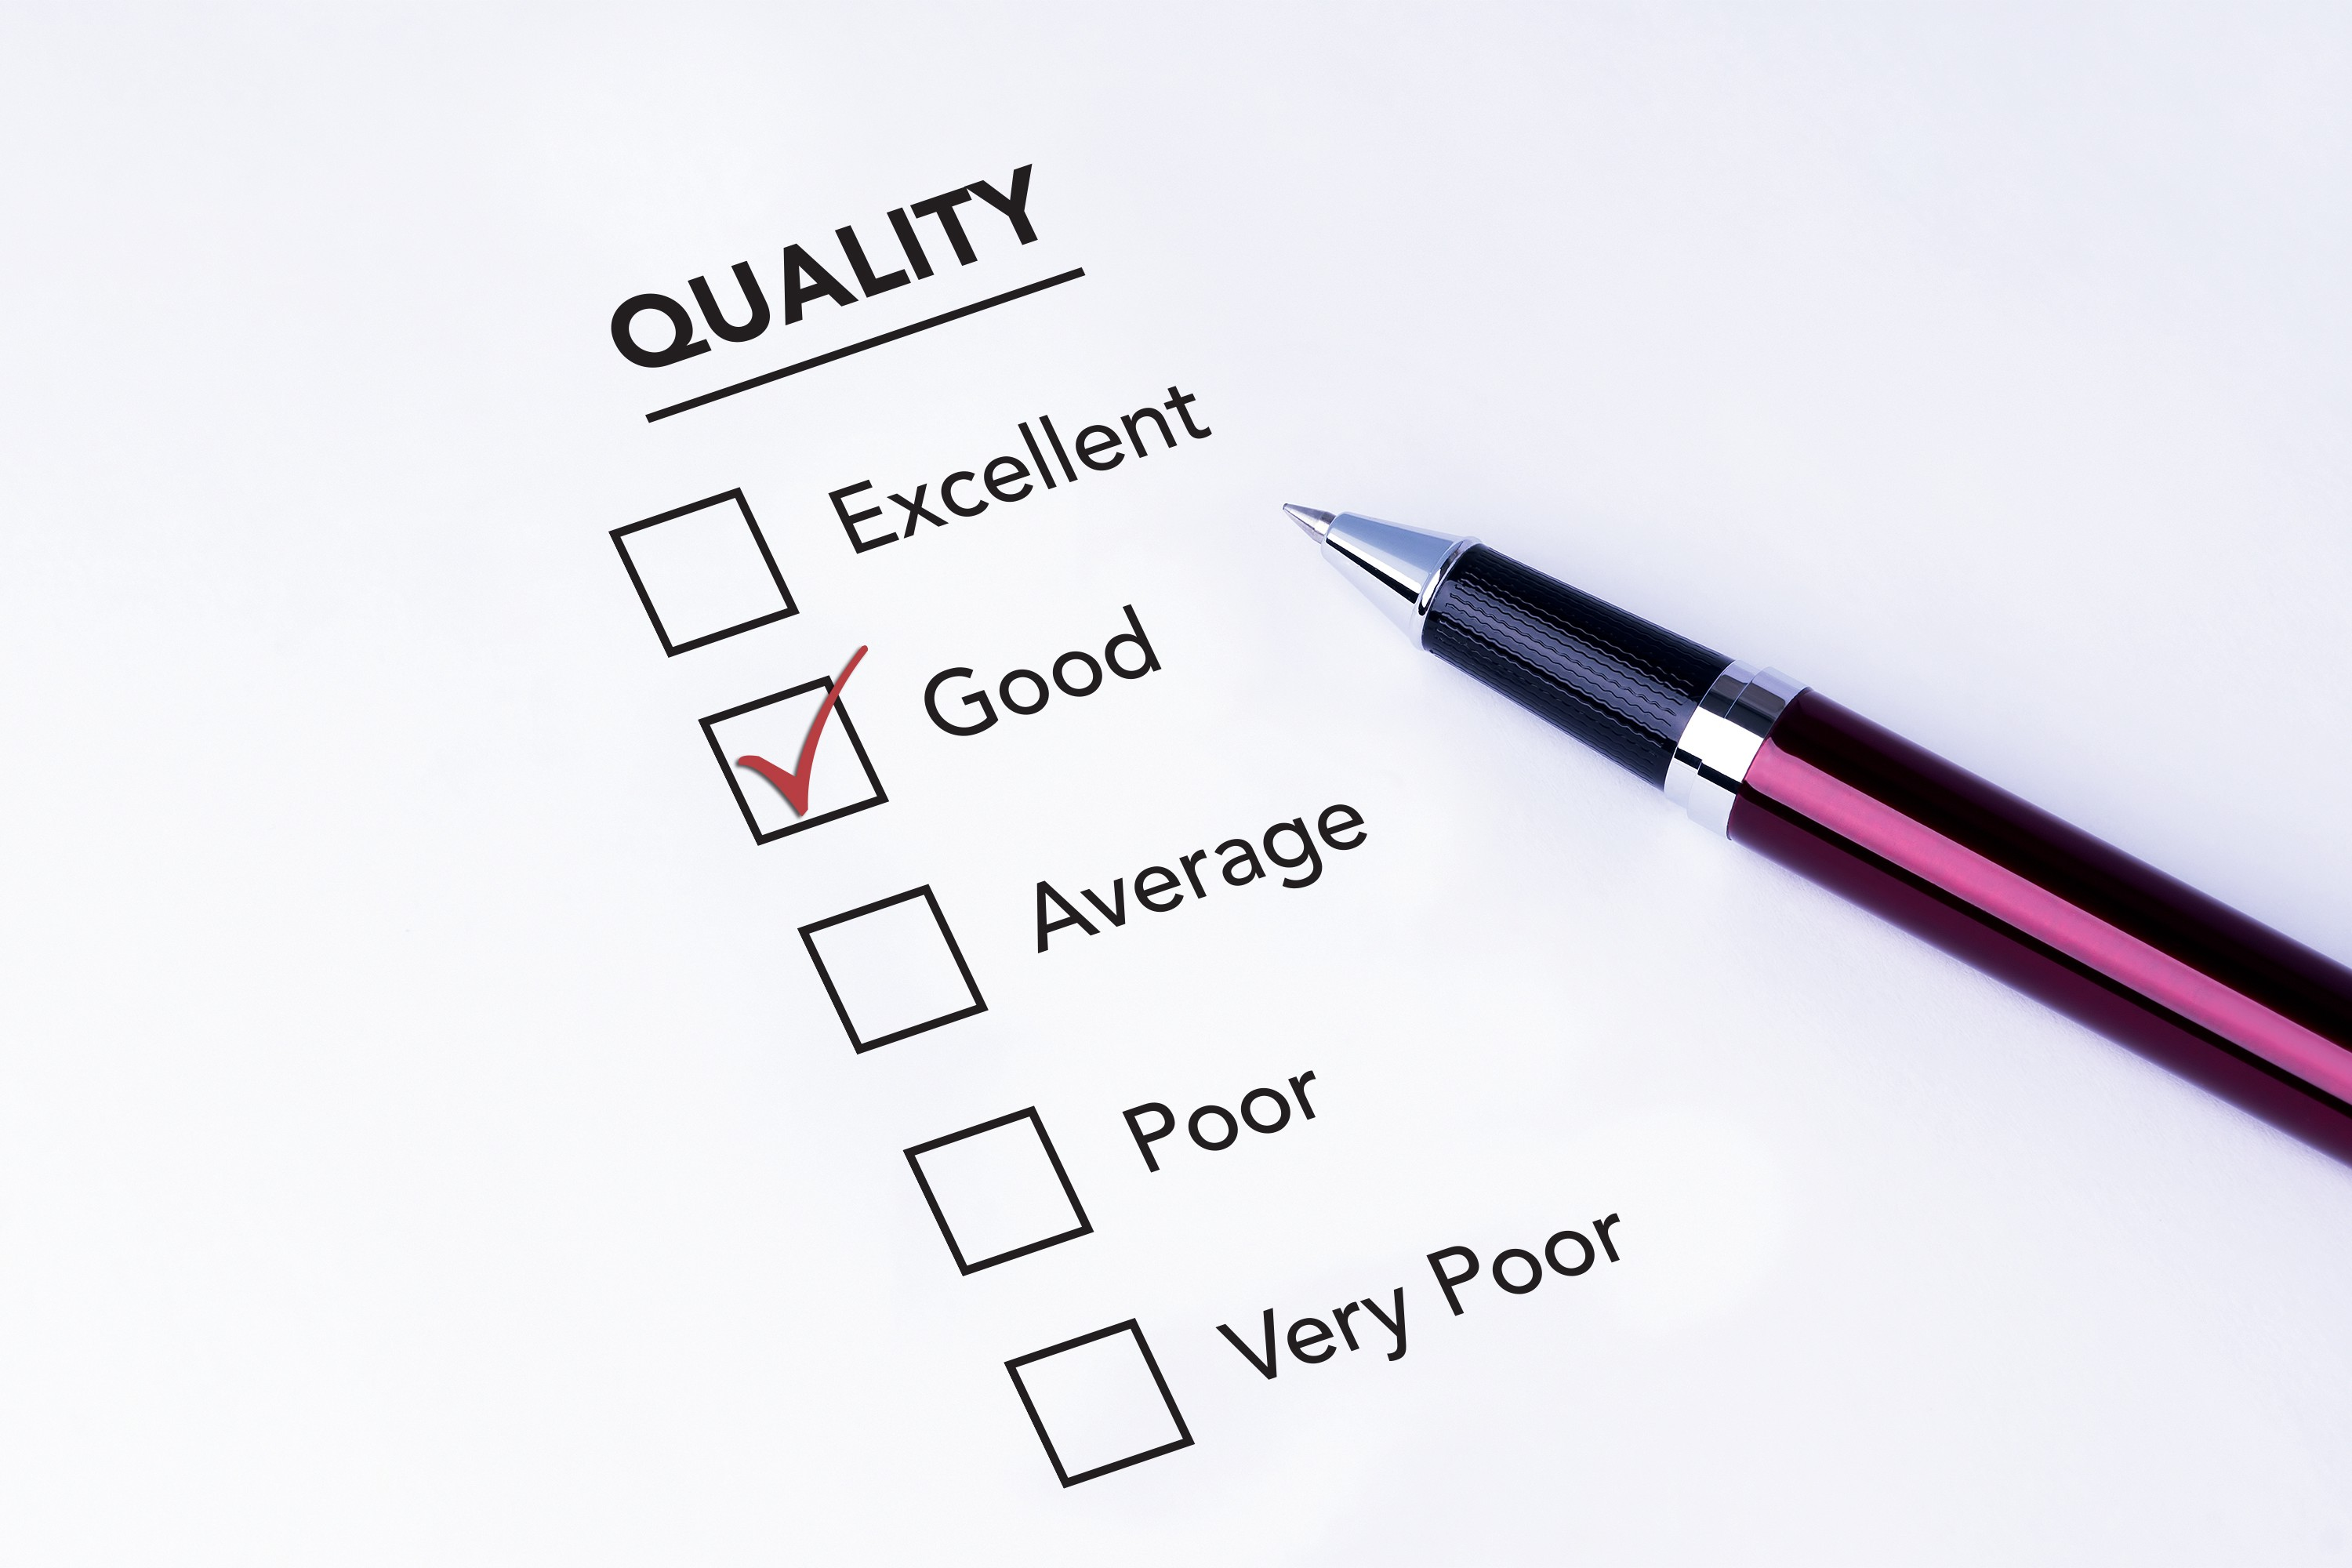 Towards a Data Quality Score in open data (Part 2)